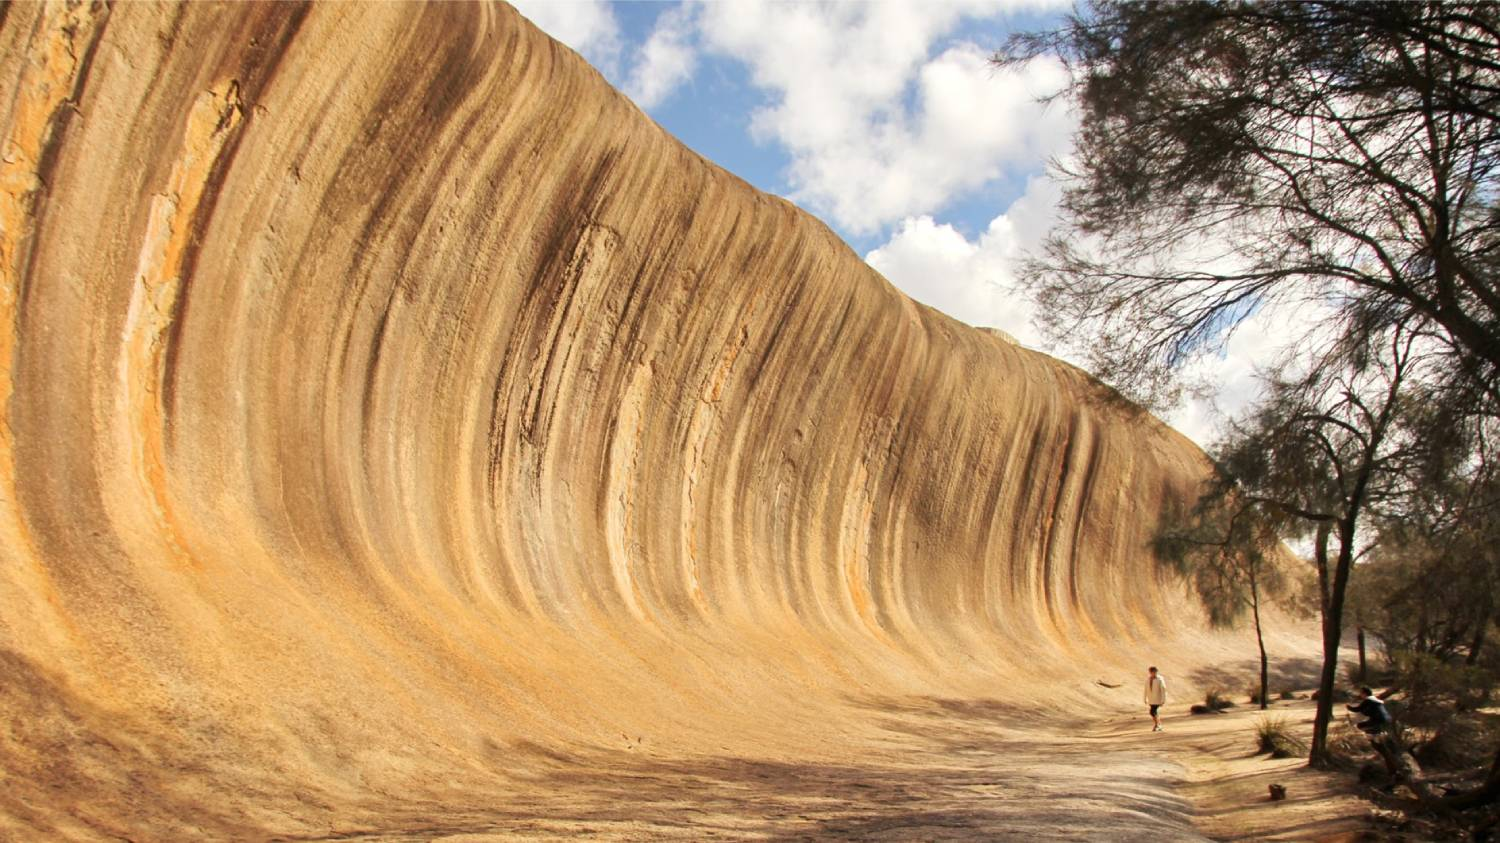 Wave Rock - Things To Do In Perth